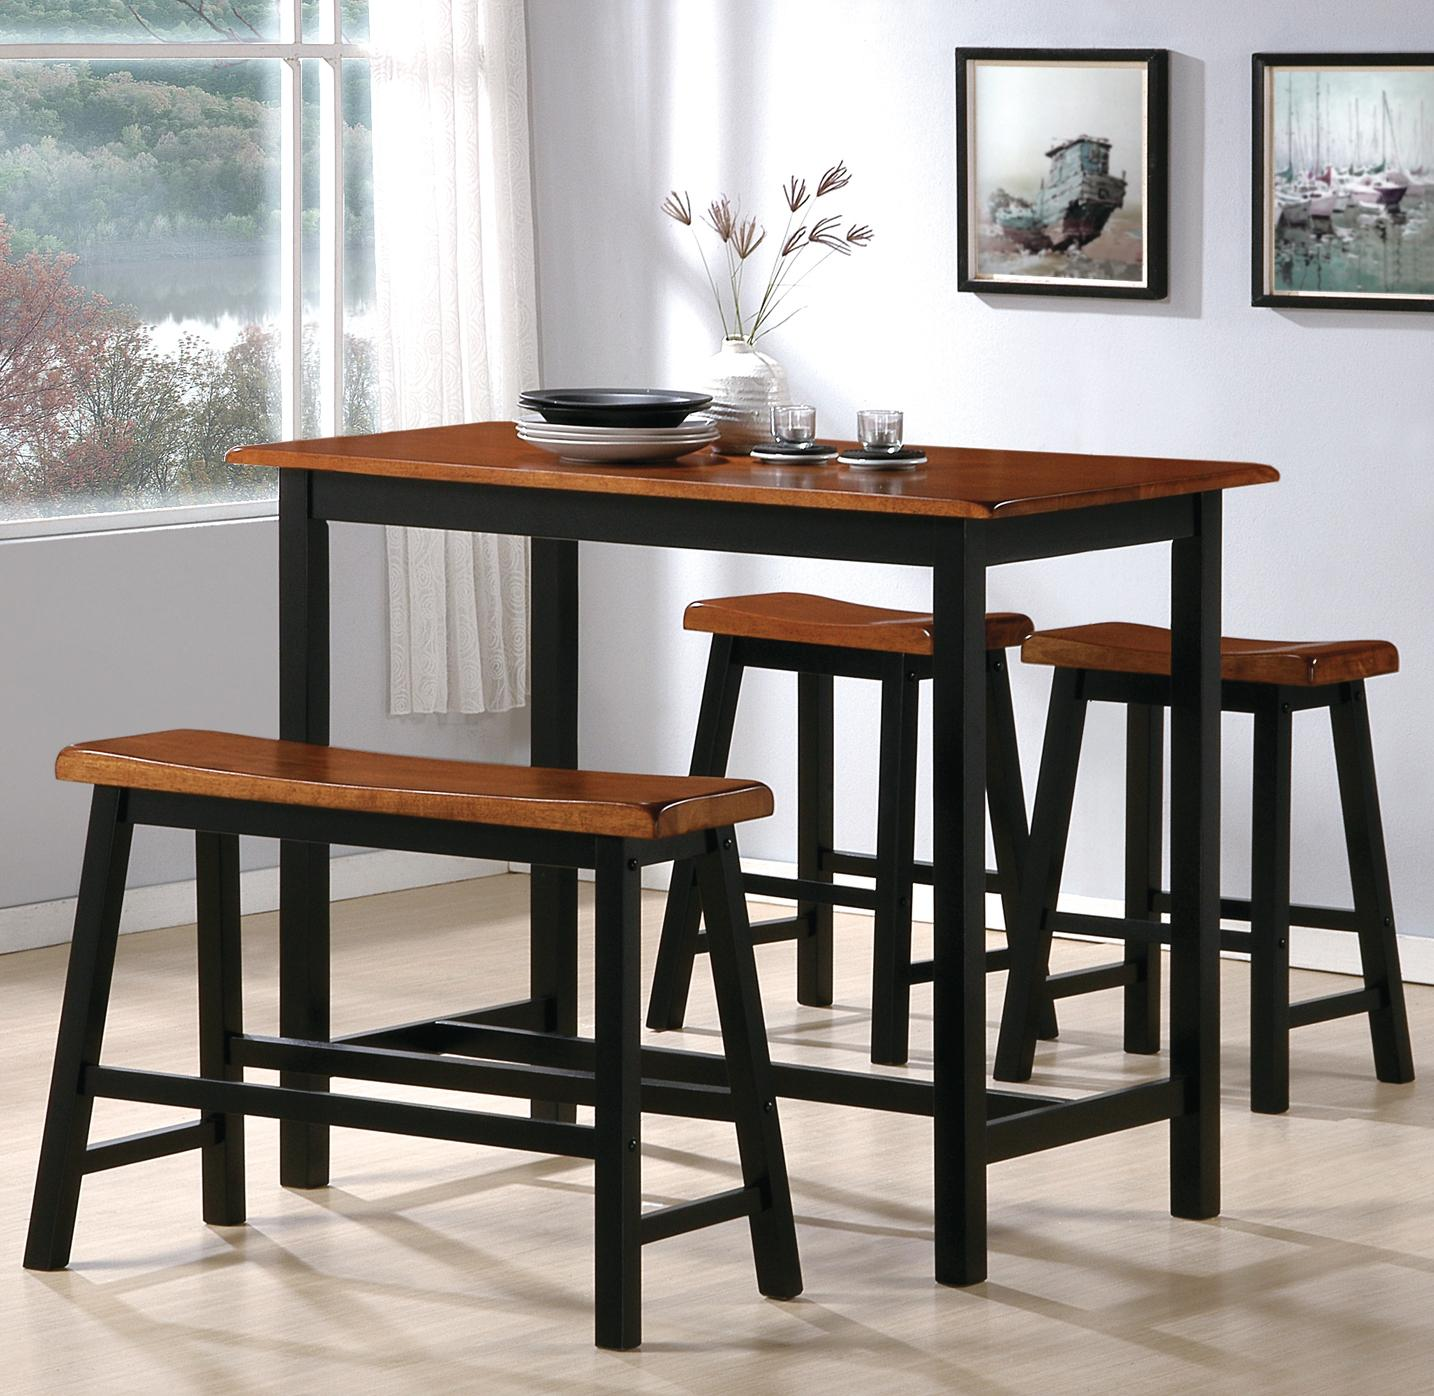 Crown mark tyler 2729set 4 piece counter height table set for Small dining set with bench